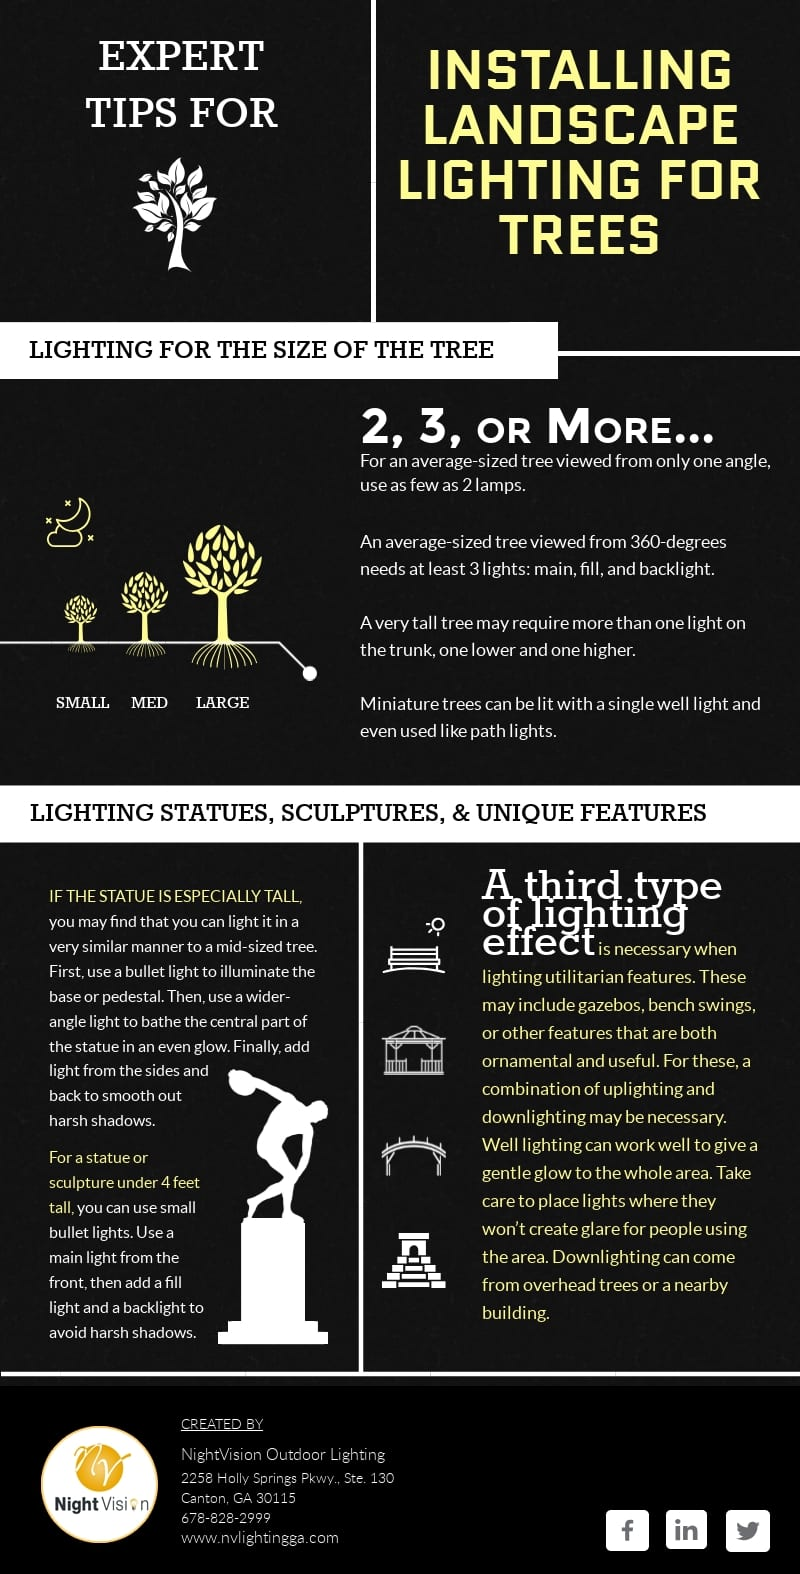 Expert Tips for Installing Landscape Lighting for Trees [infographic]